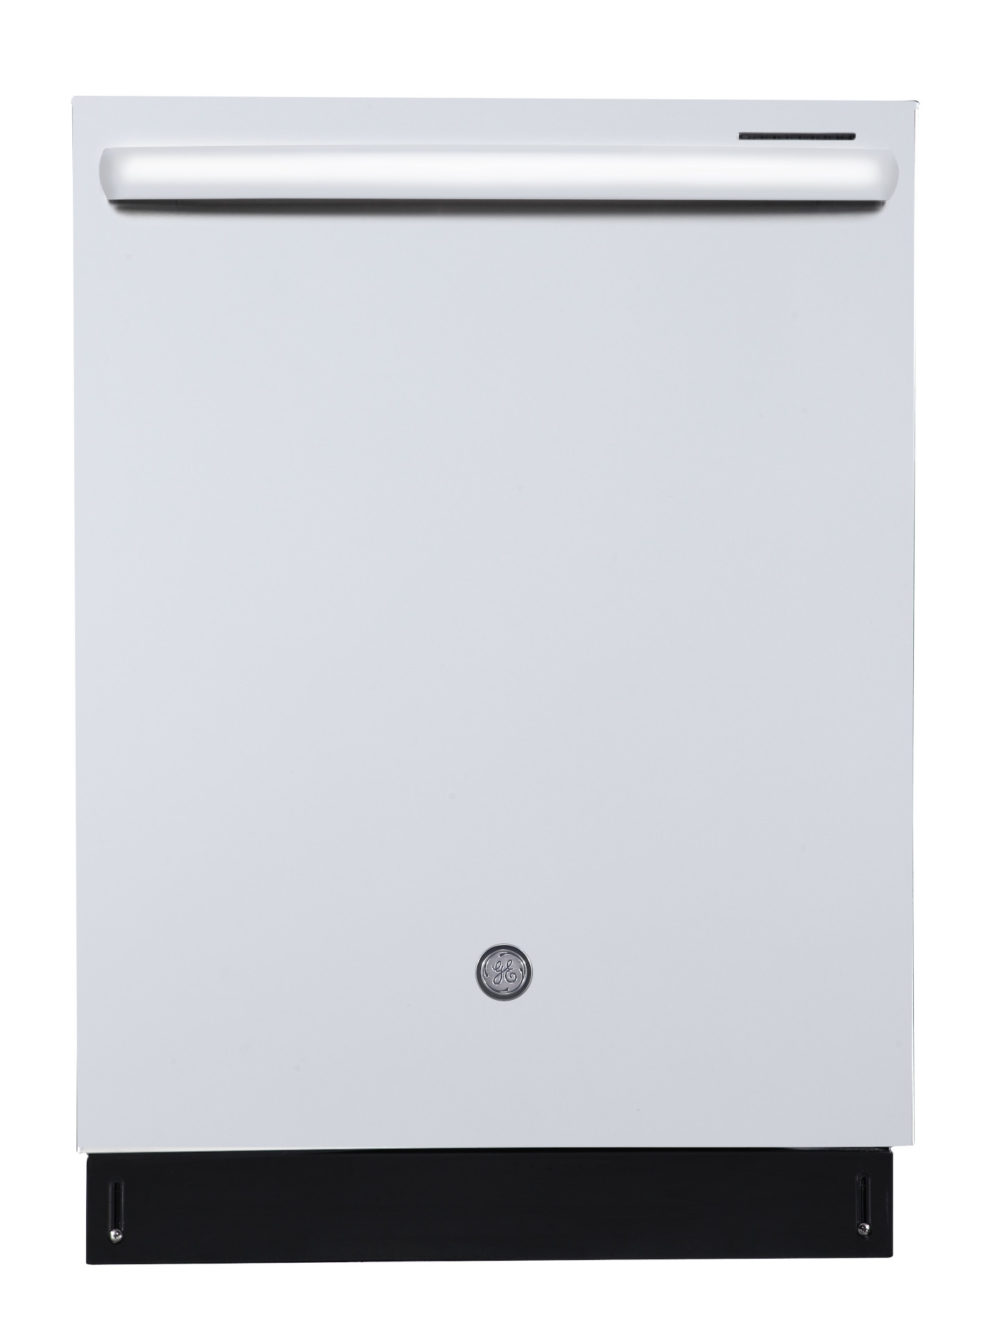 22830 - Stainless Steel Dishwasher w/ Tall Tub - PBT660SGLWW